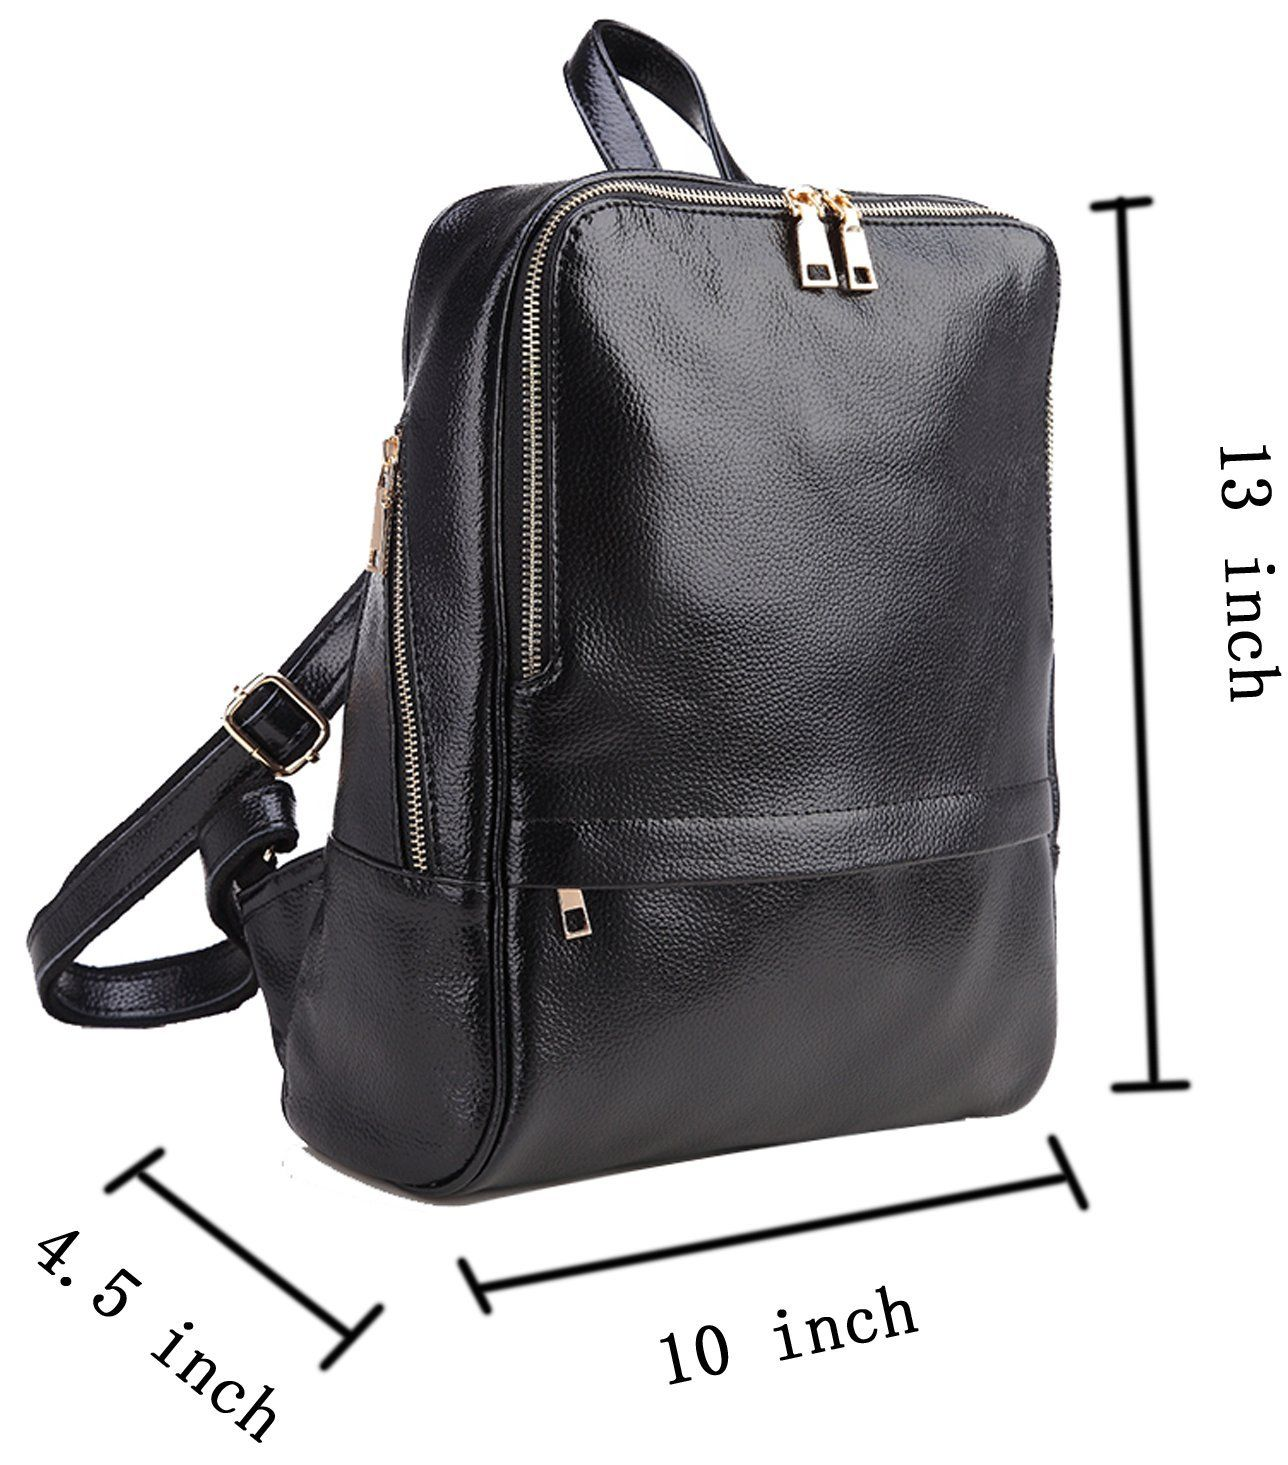 ce953bcf9575 Coolcy Hot Style Casual Women Real Genuine Leather Backpack Fashion  Shoolbag Camping Bag Shoulder Bag (Black)